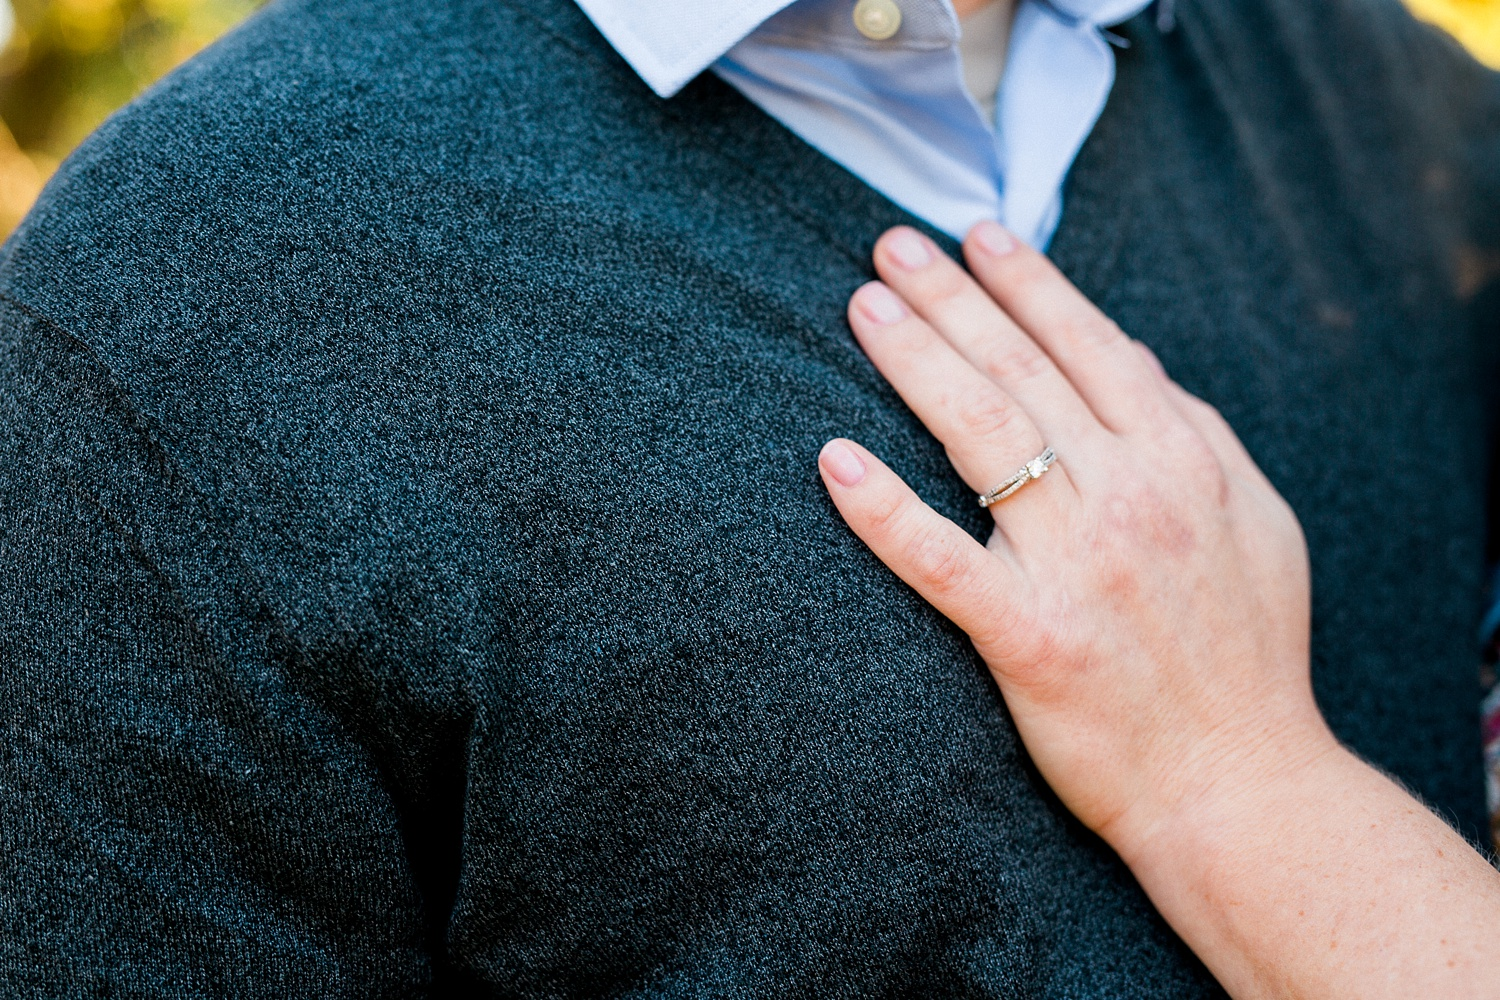 woman rest her hand on her fiance's chest